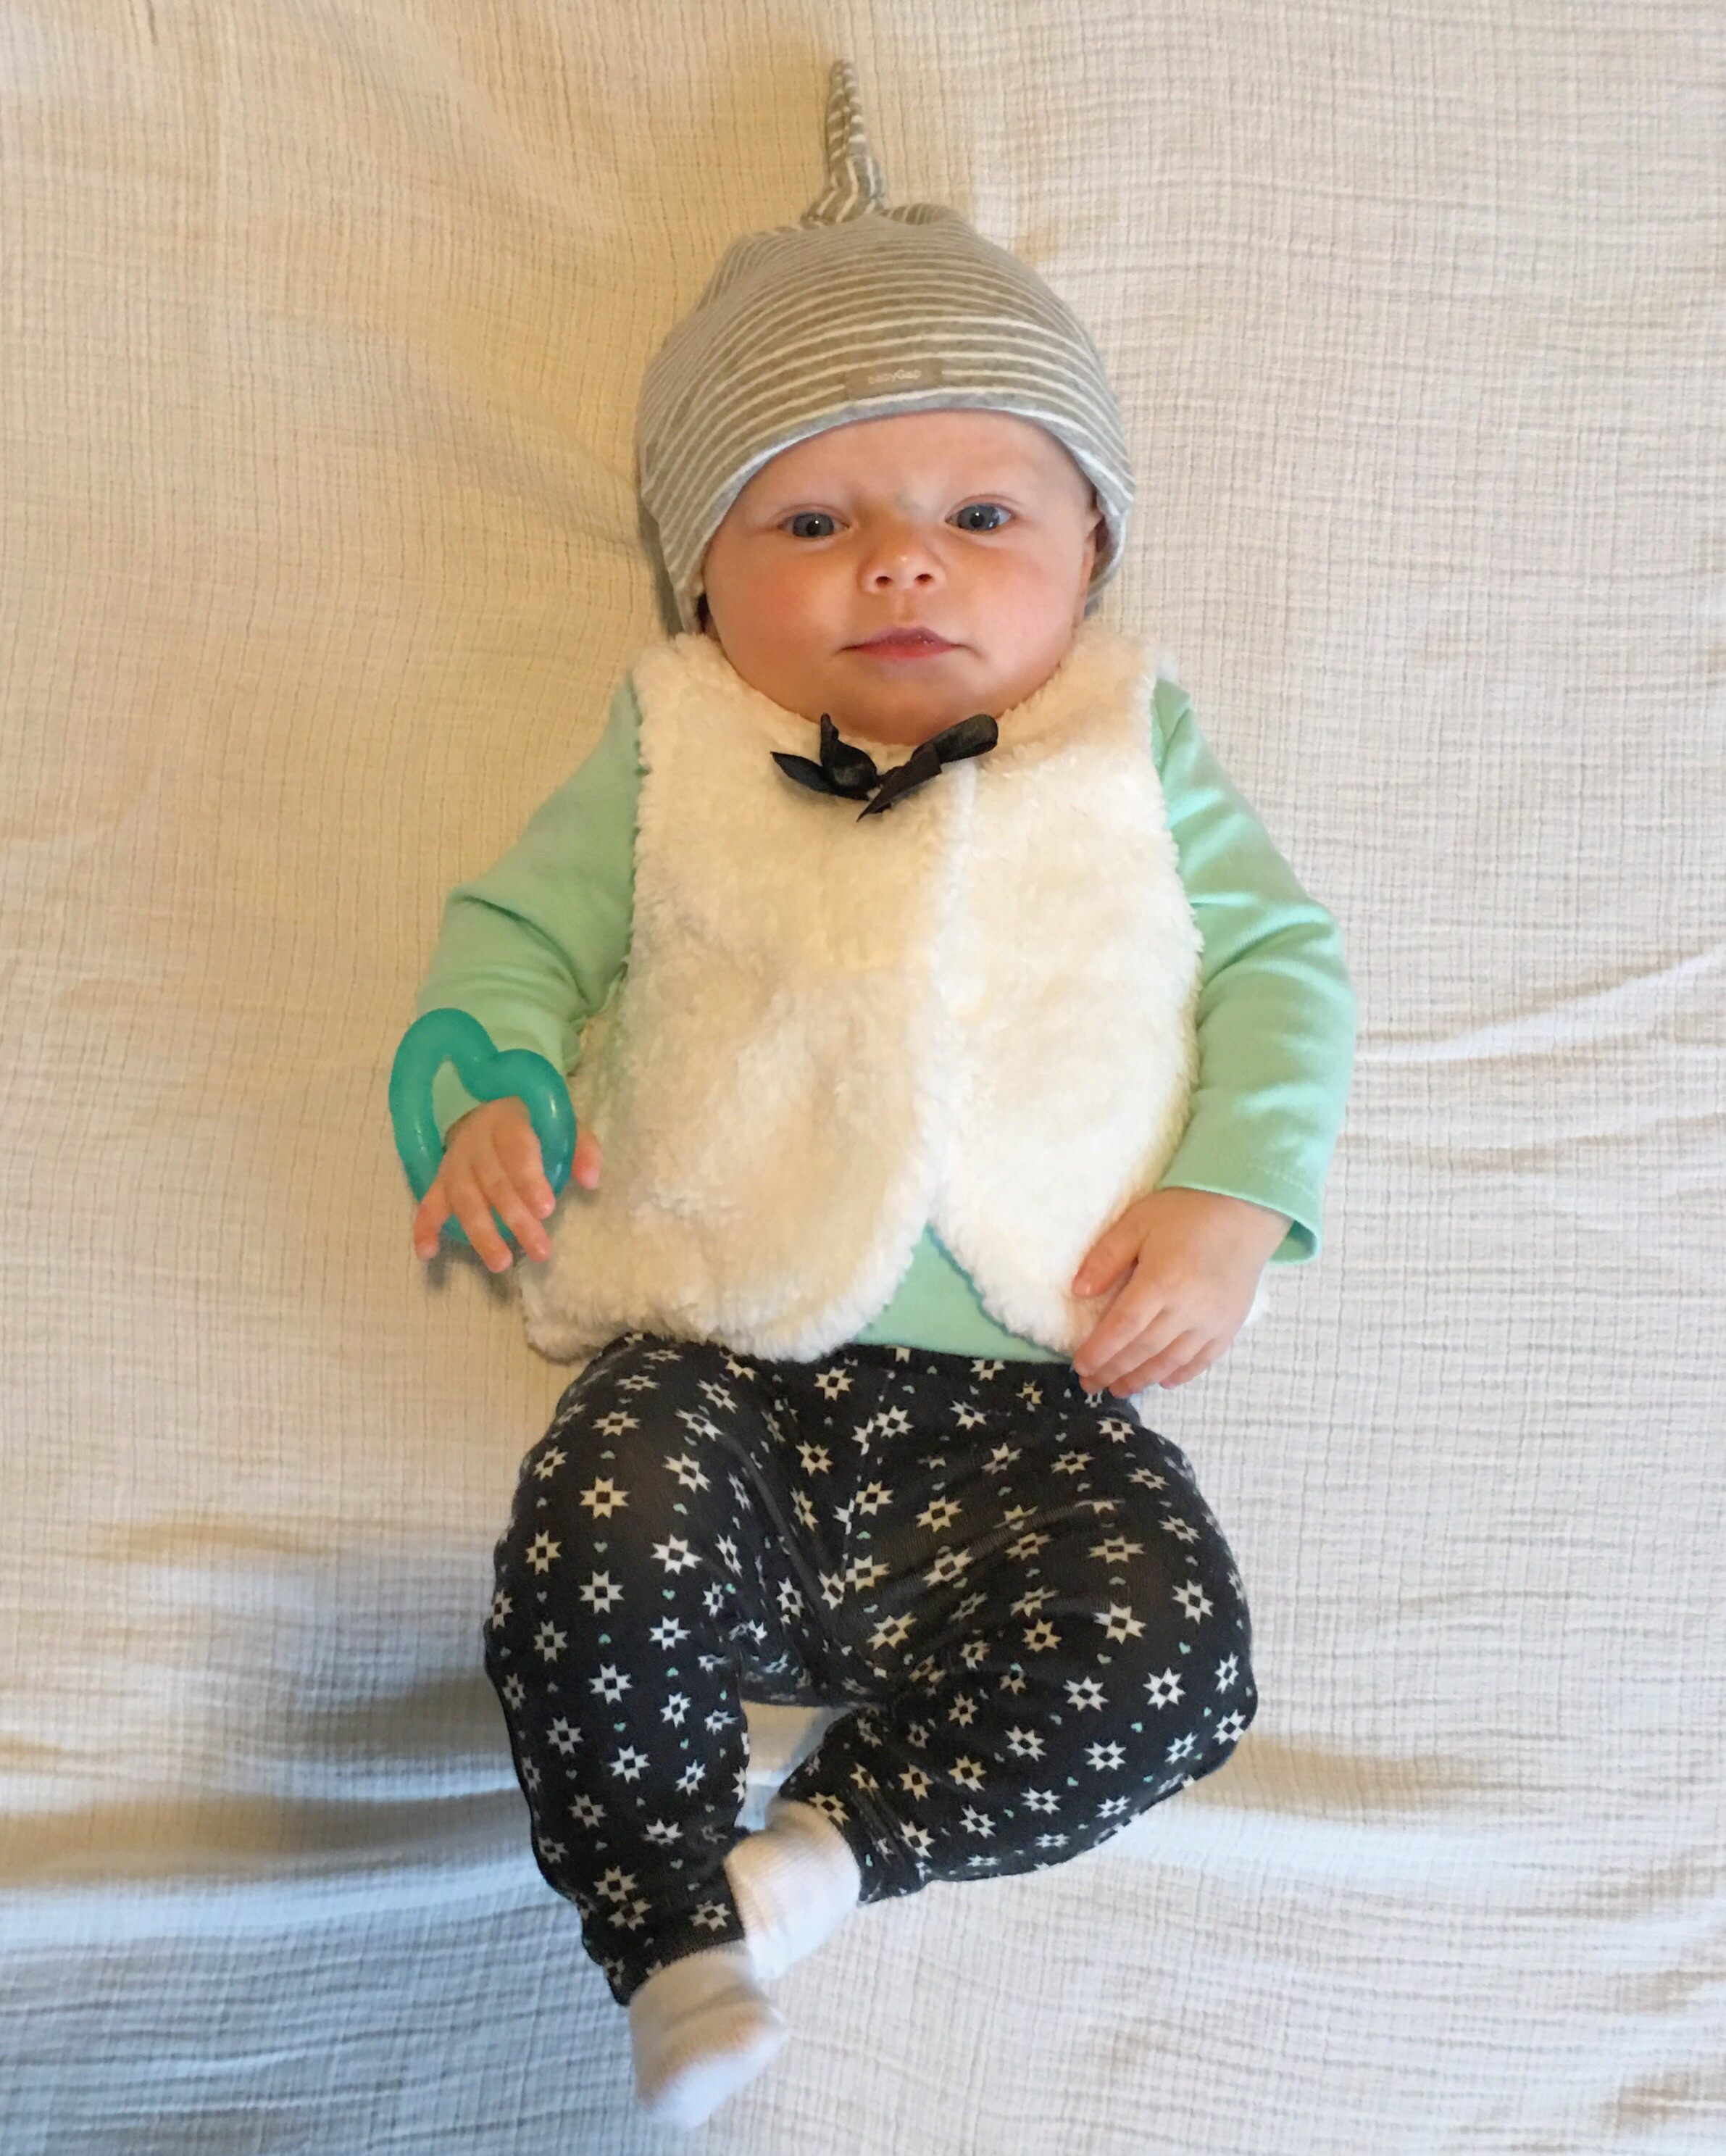 Teething | Vienna's outfit baby ootd kids fashion | Meagan Kludt | the winemakers wife